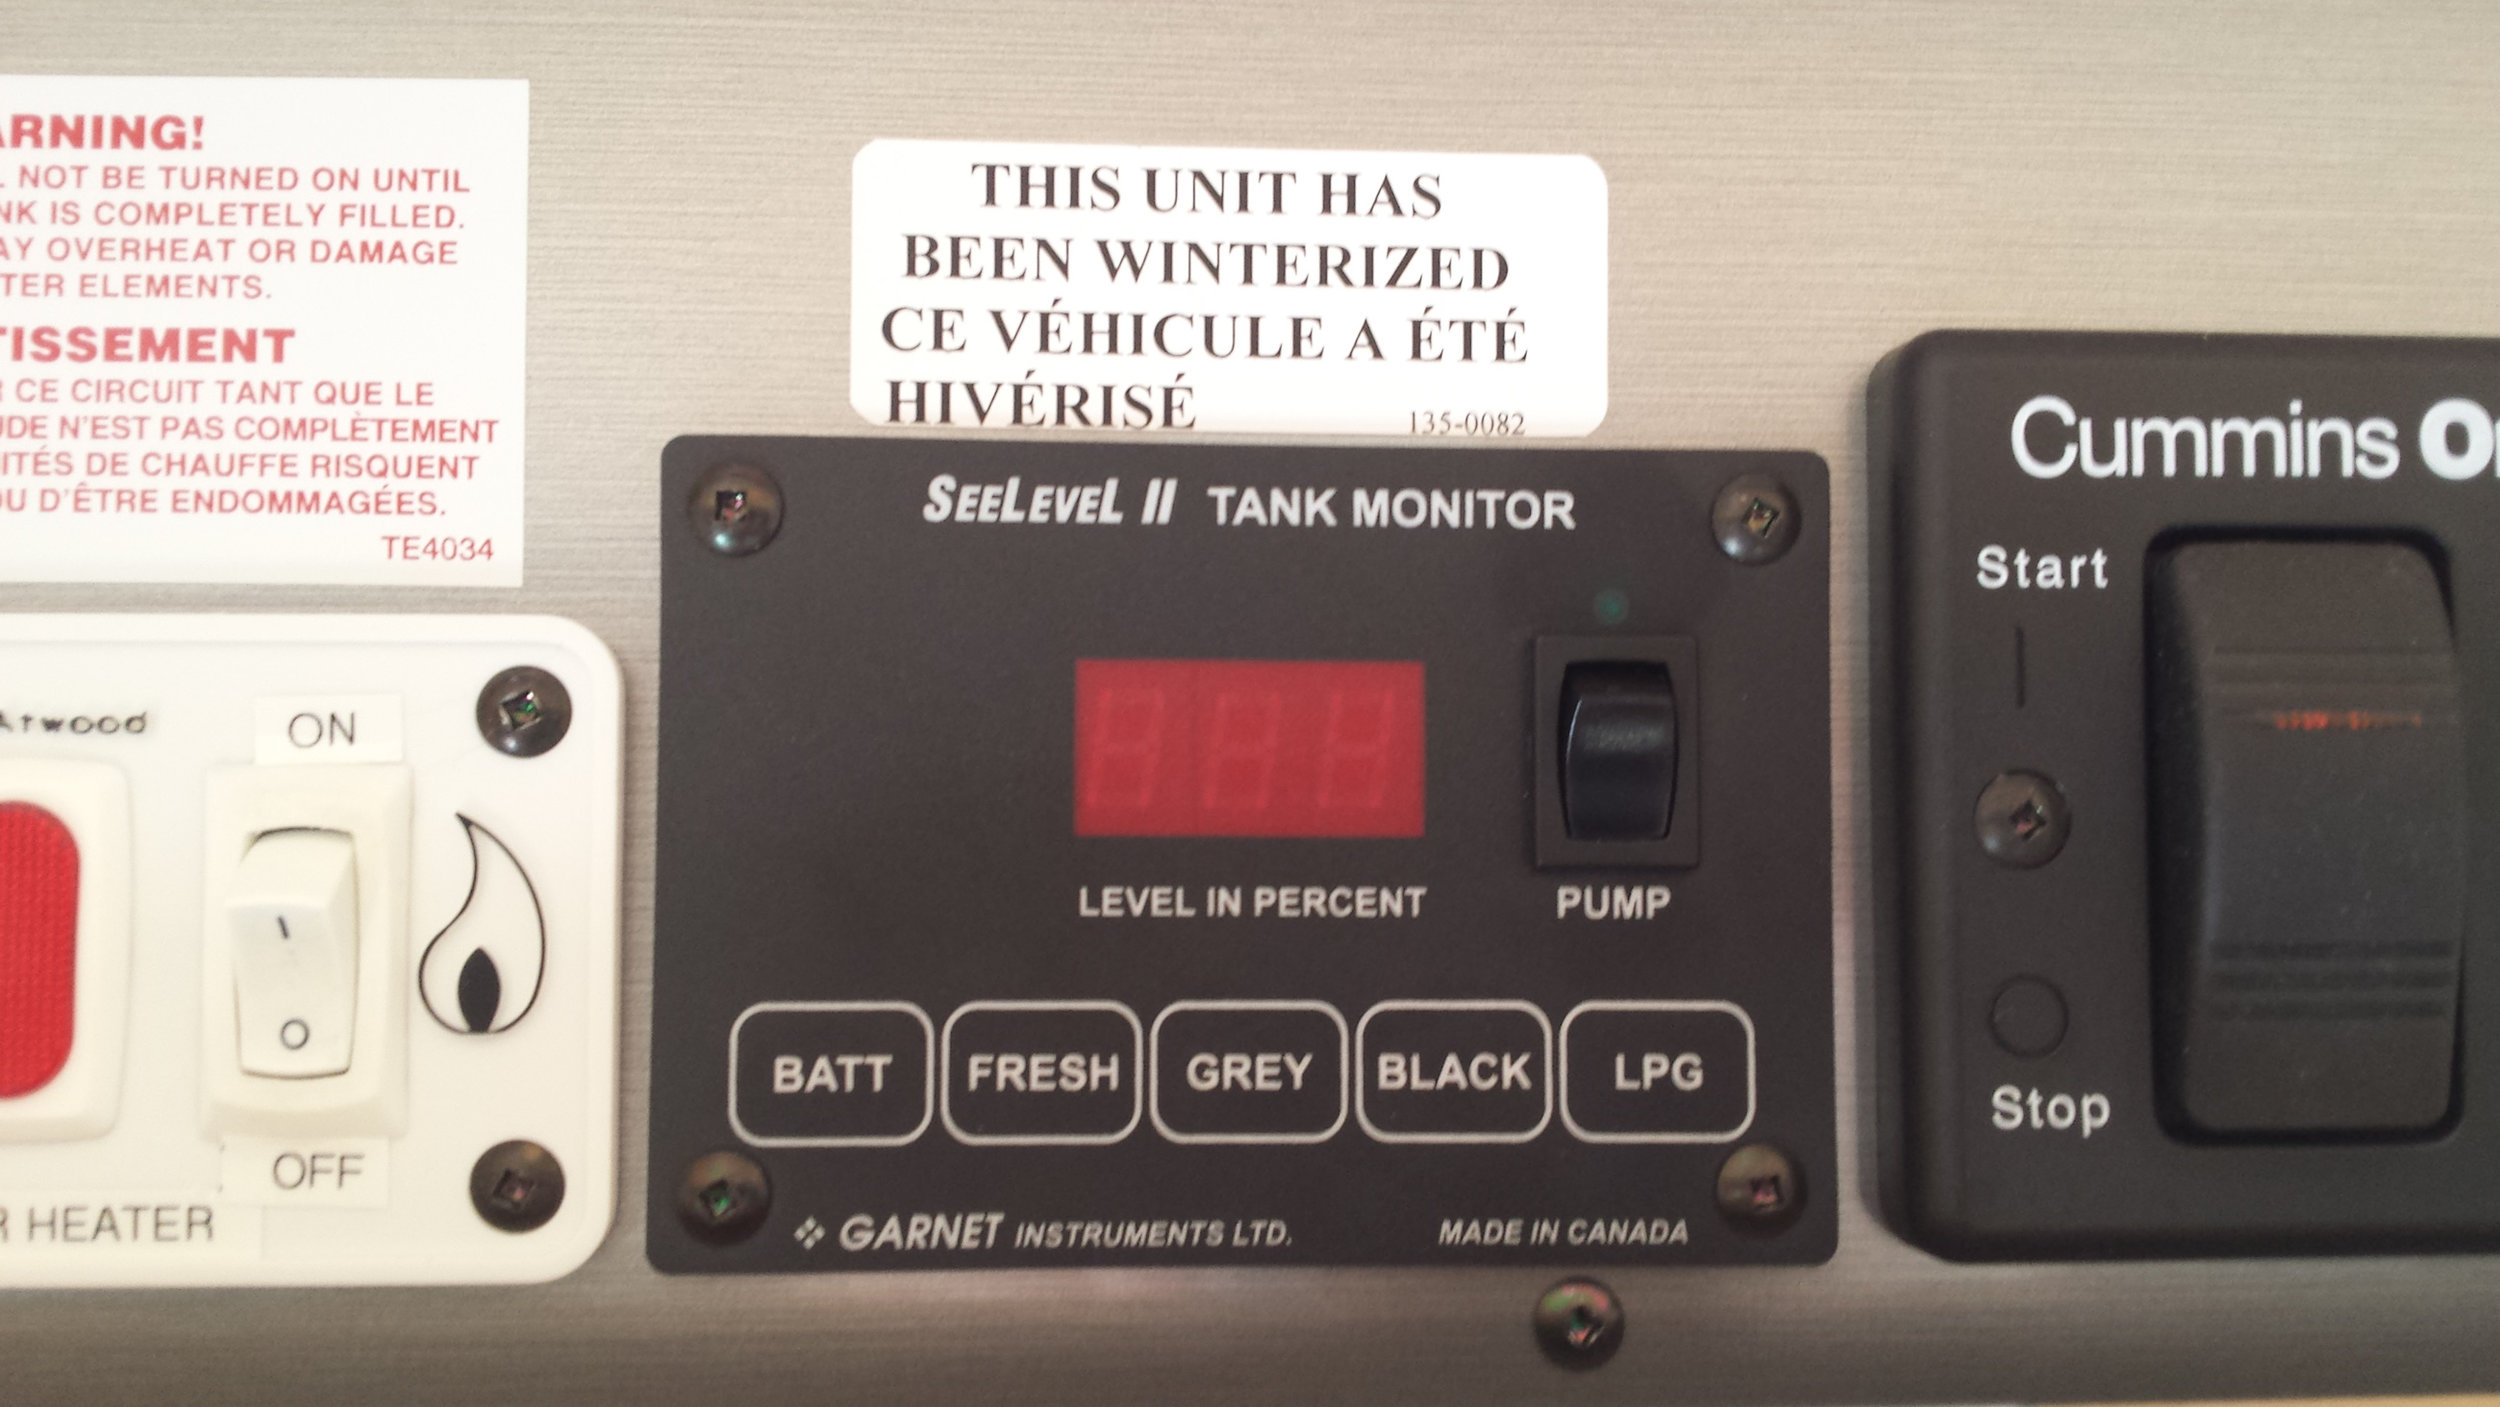 Keep an eye on the tank levels with the tank monitor panel.